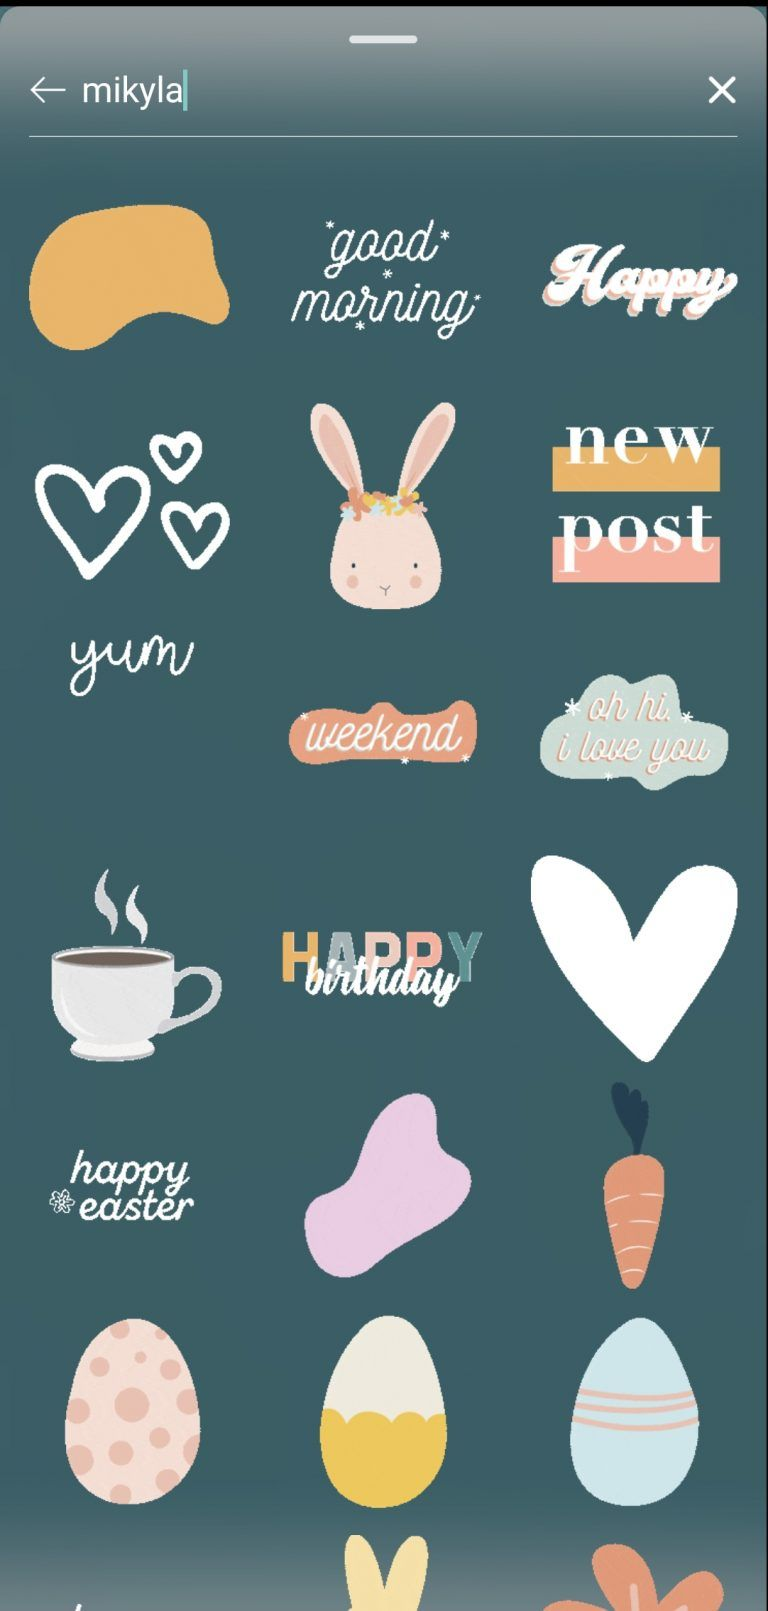 40 aesthetic gifs stickers for instagram stories in